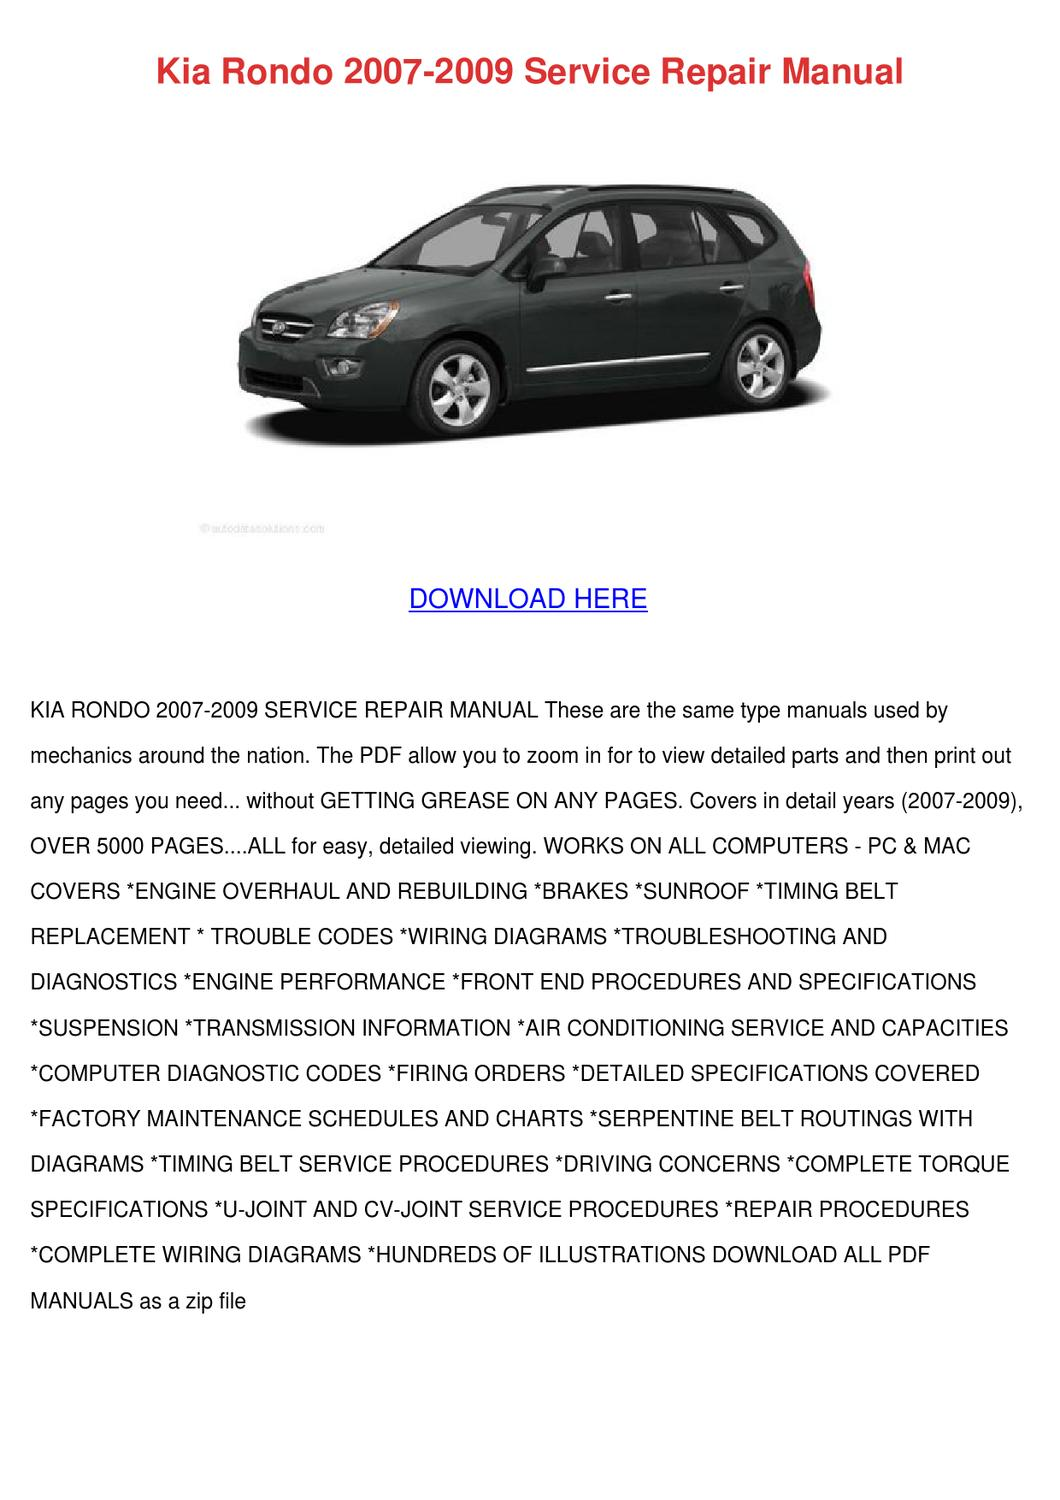 2007 kia rondo owners manual pdf